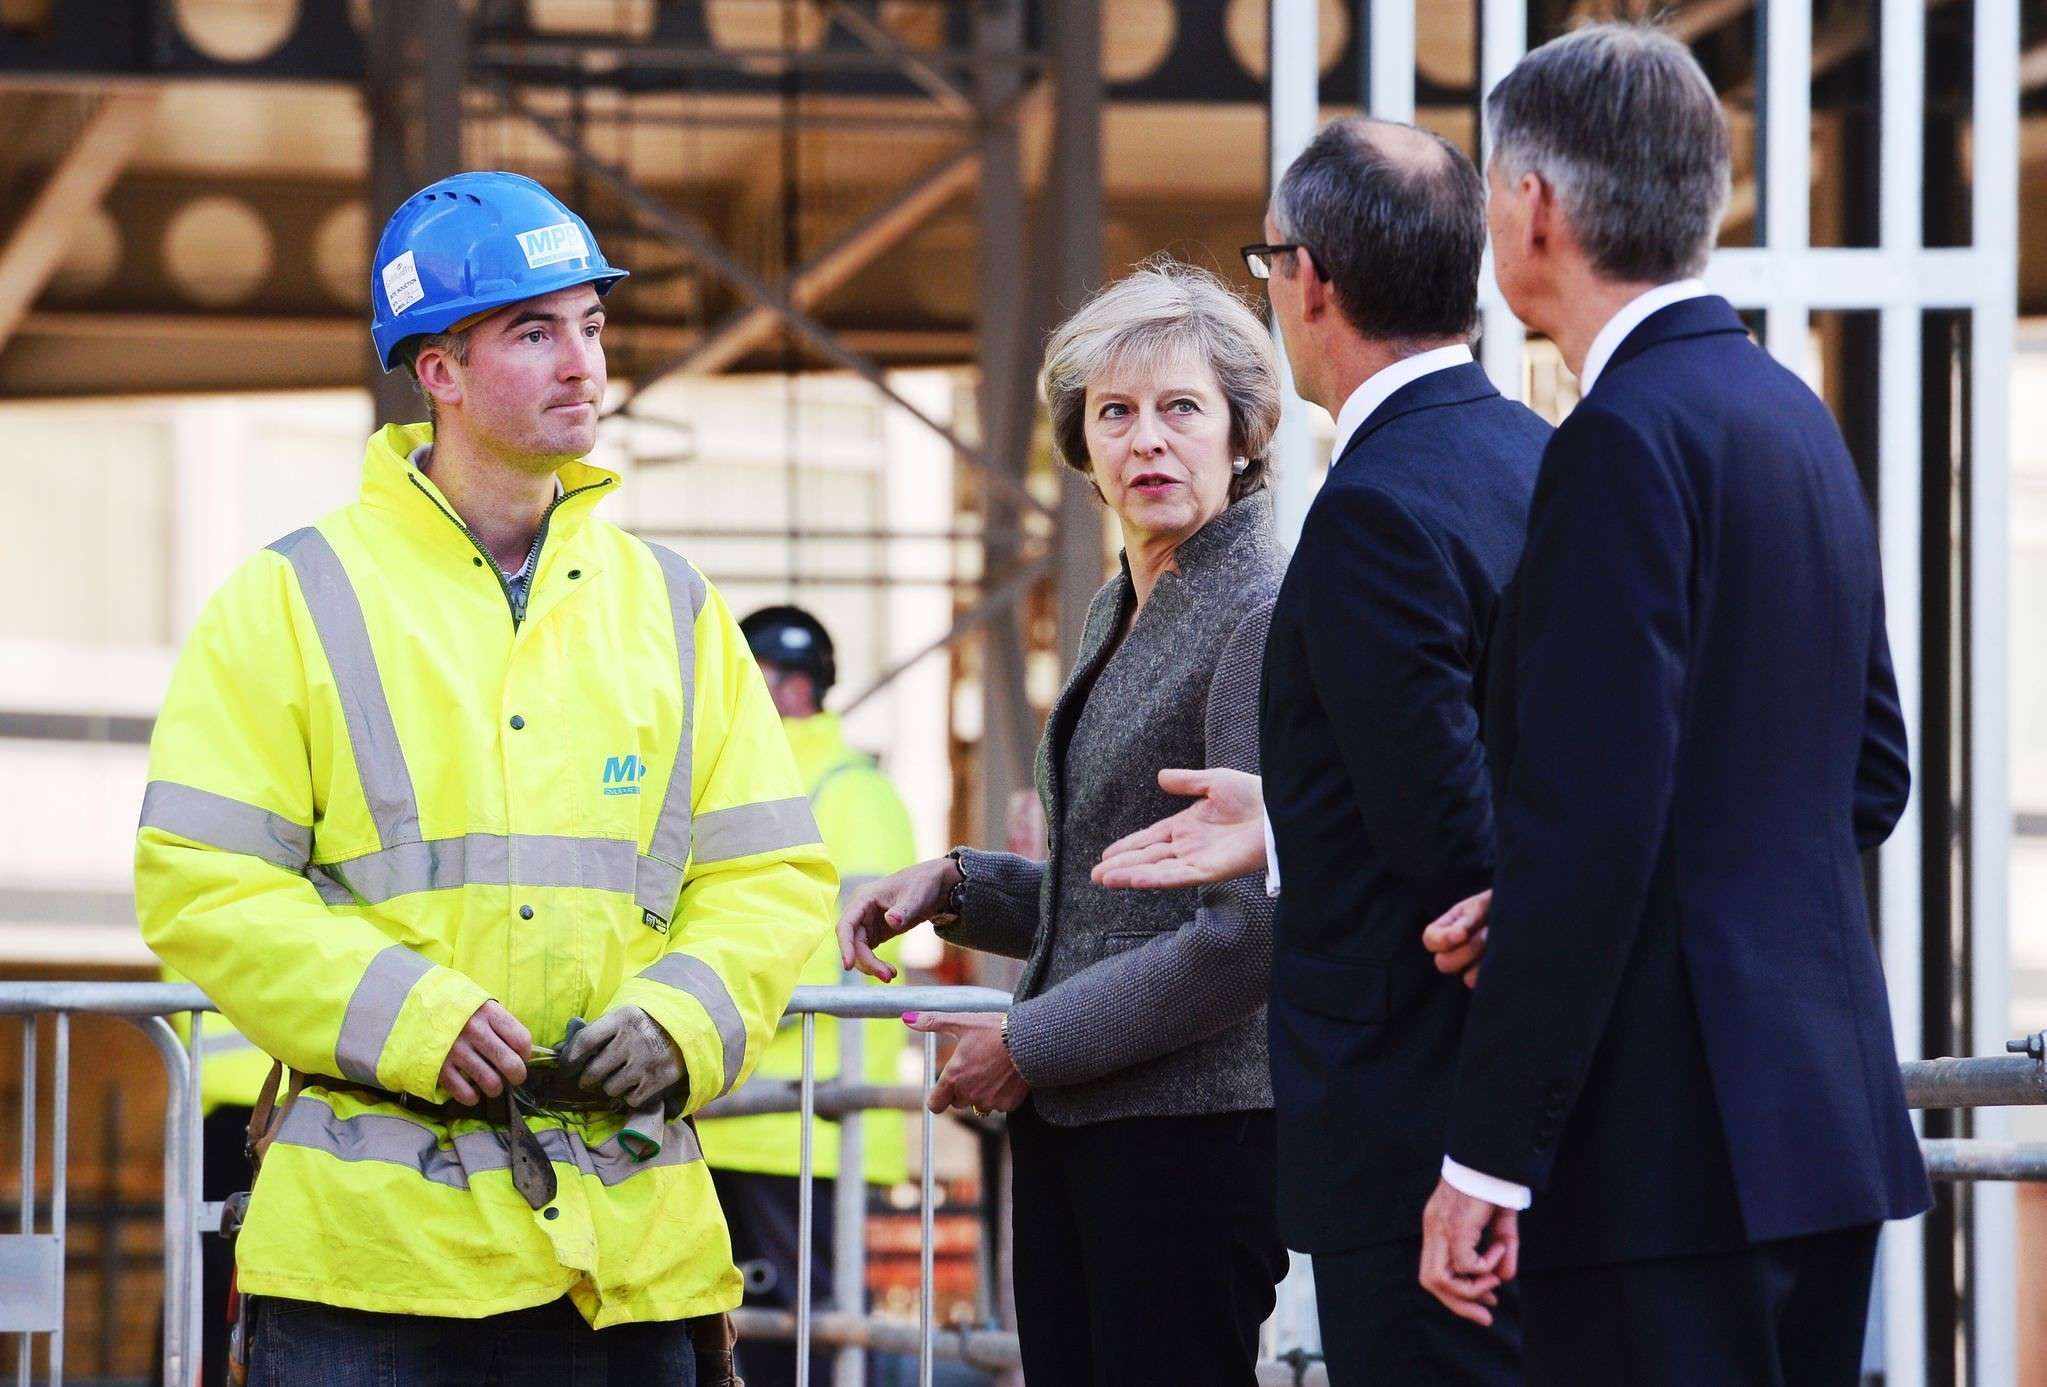 British Prime Minister Theresa May (2L) and British Chancellor of the Exchequer Philip Hammond (R) visit a construction site where new HSBC offices are being built in Birmingham. (AFP Photo)